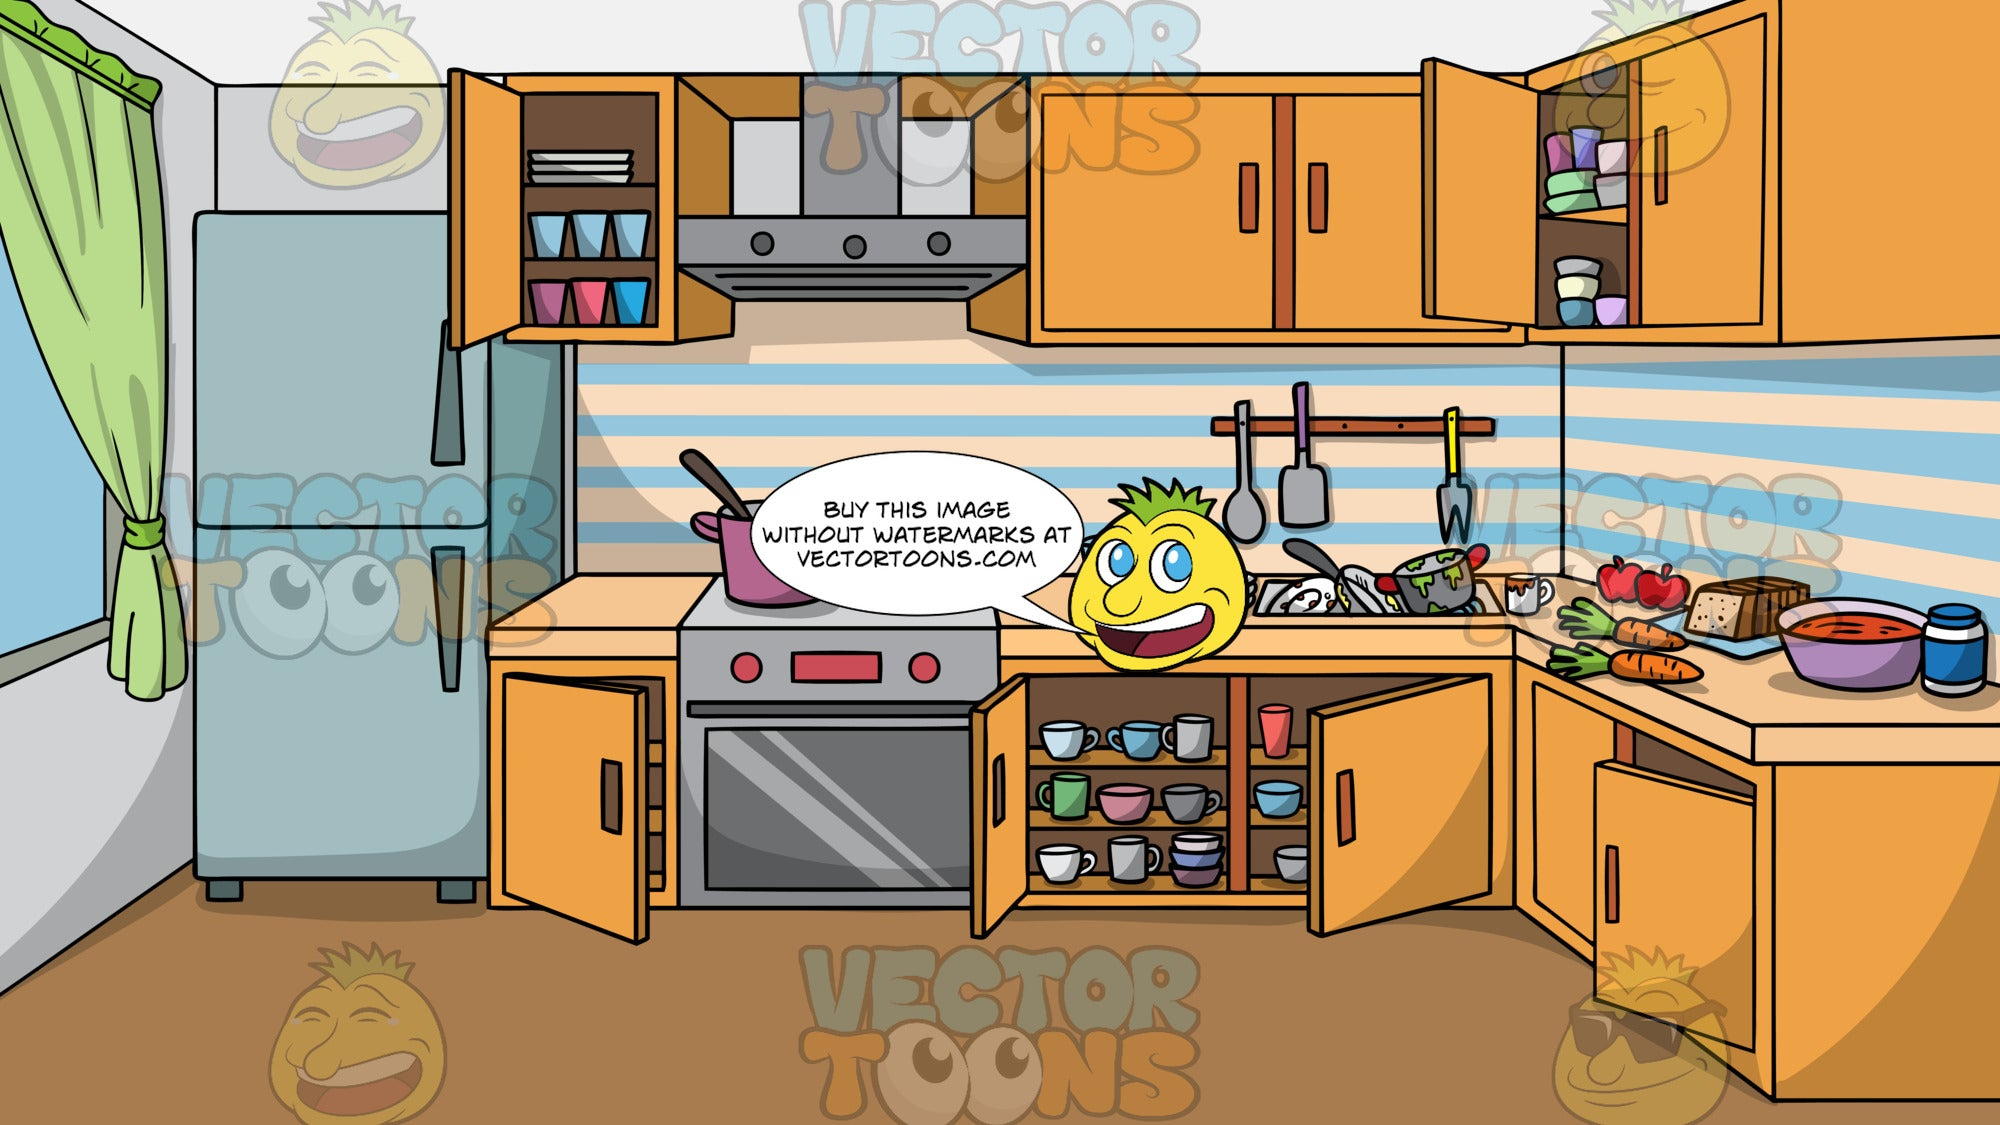 A Messy Kitchen Background. A kitchen with cupboard doors left open, a pot left on the stove, dirty dishes in the sink, and dishes and food left on the counter